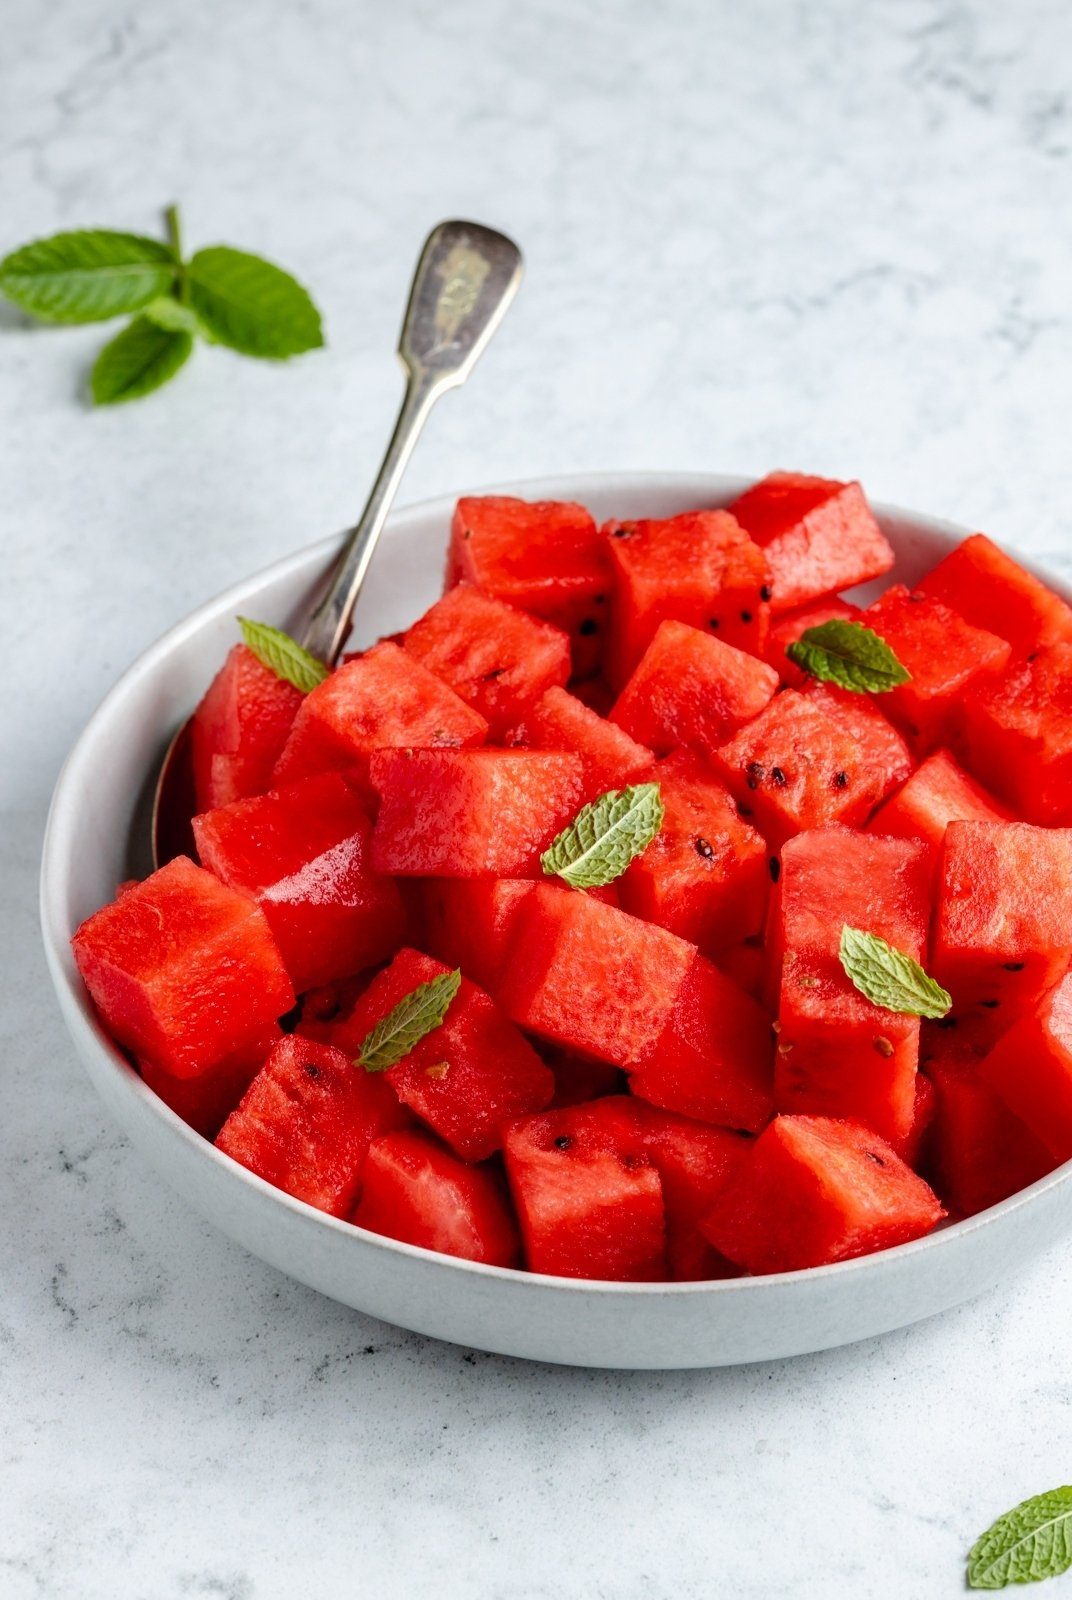 cubed watermelon in a bowl with mint leaves